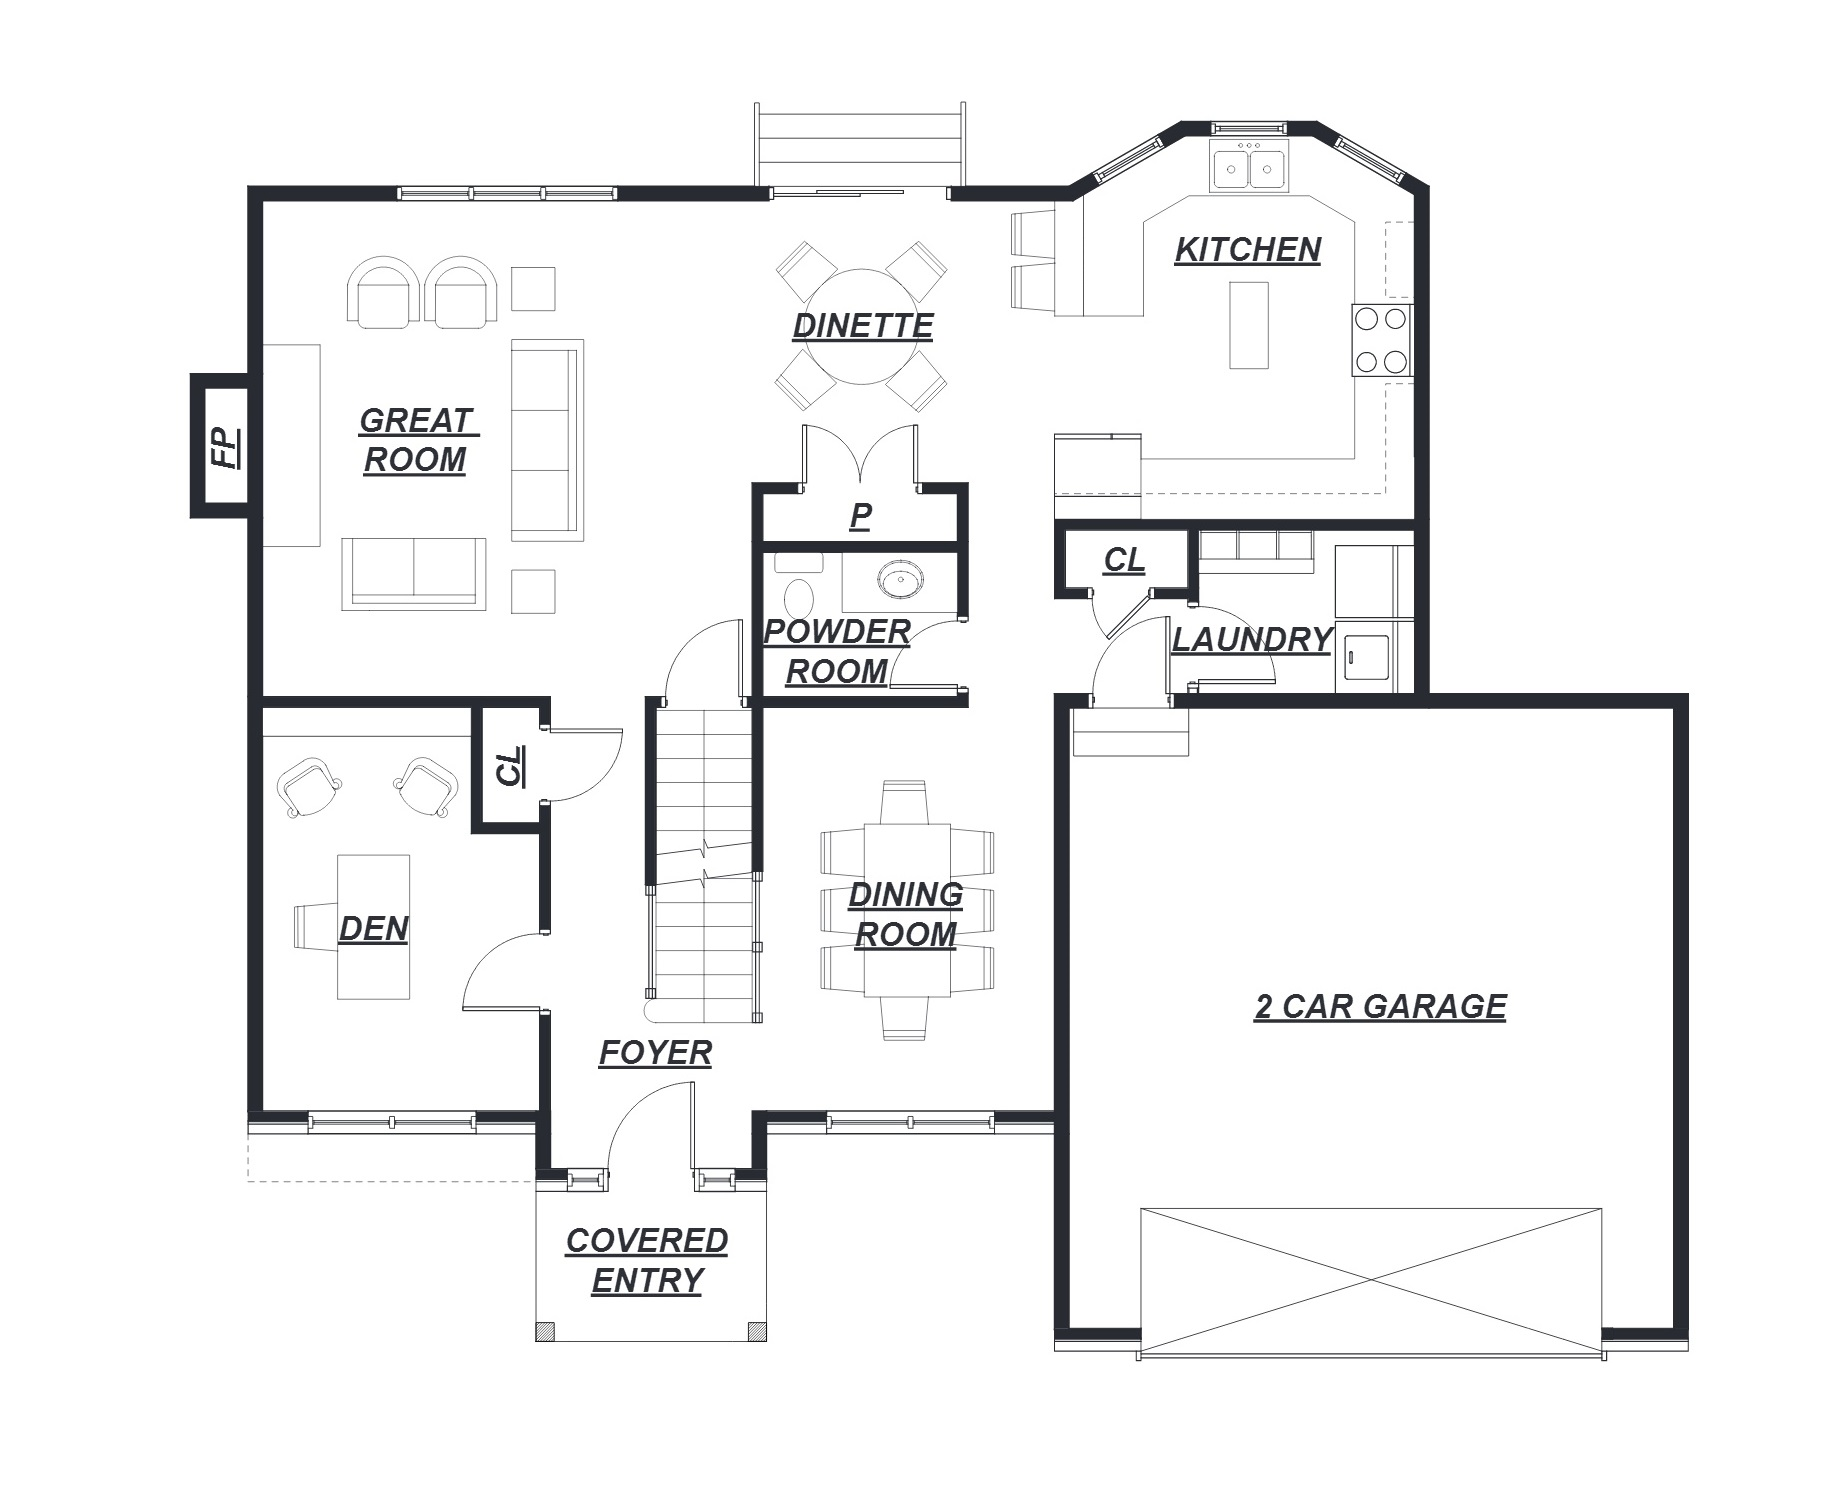 83 Avalon Meadows  Floor Plan